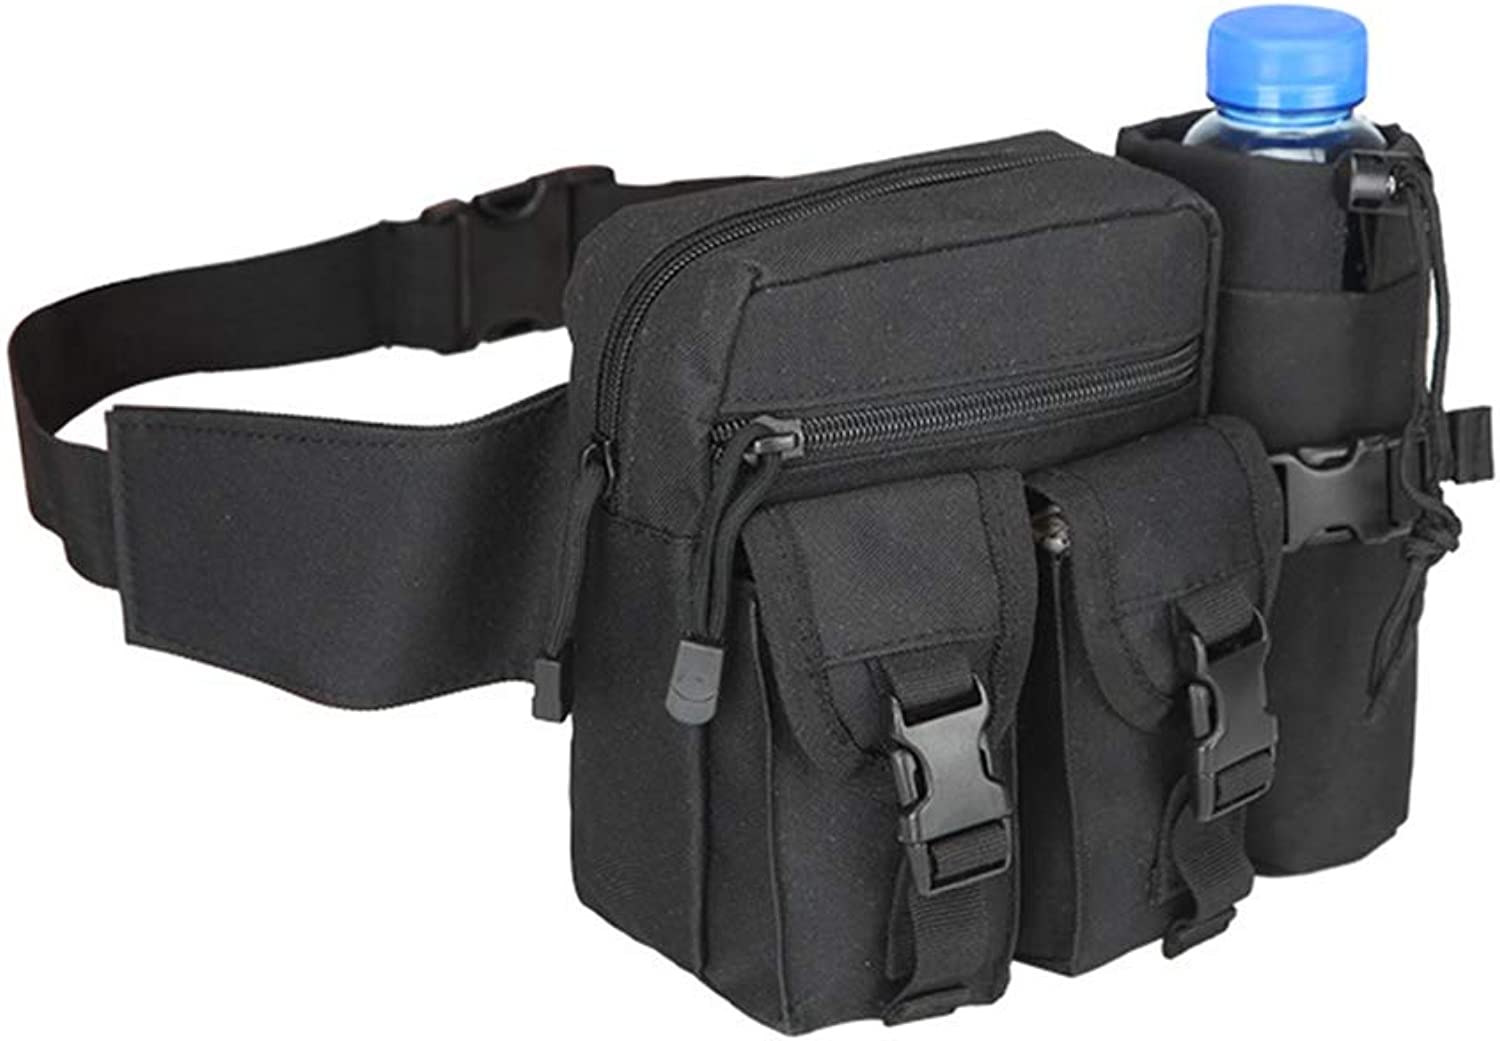 KKONION Kettle Pocket Tactical Waist Pack Portable Fanny Pack Outdoor Hiking Oxford Hydration Bag